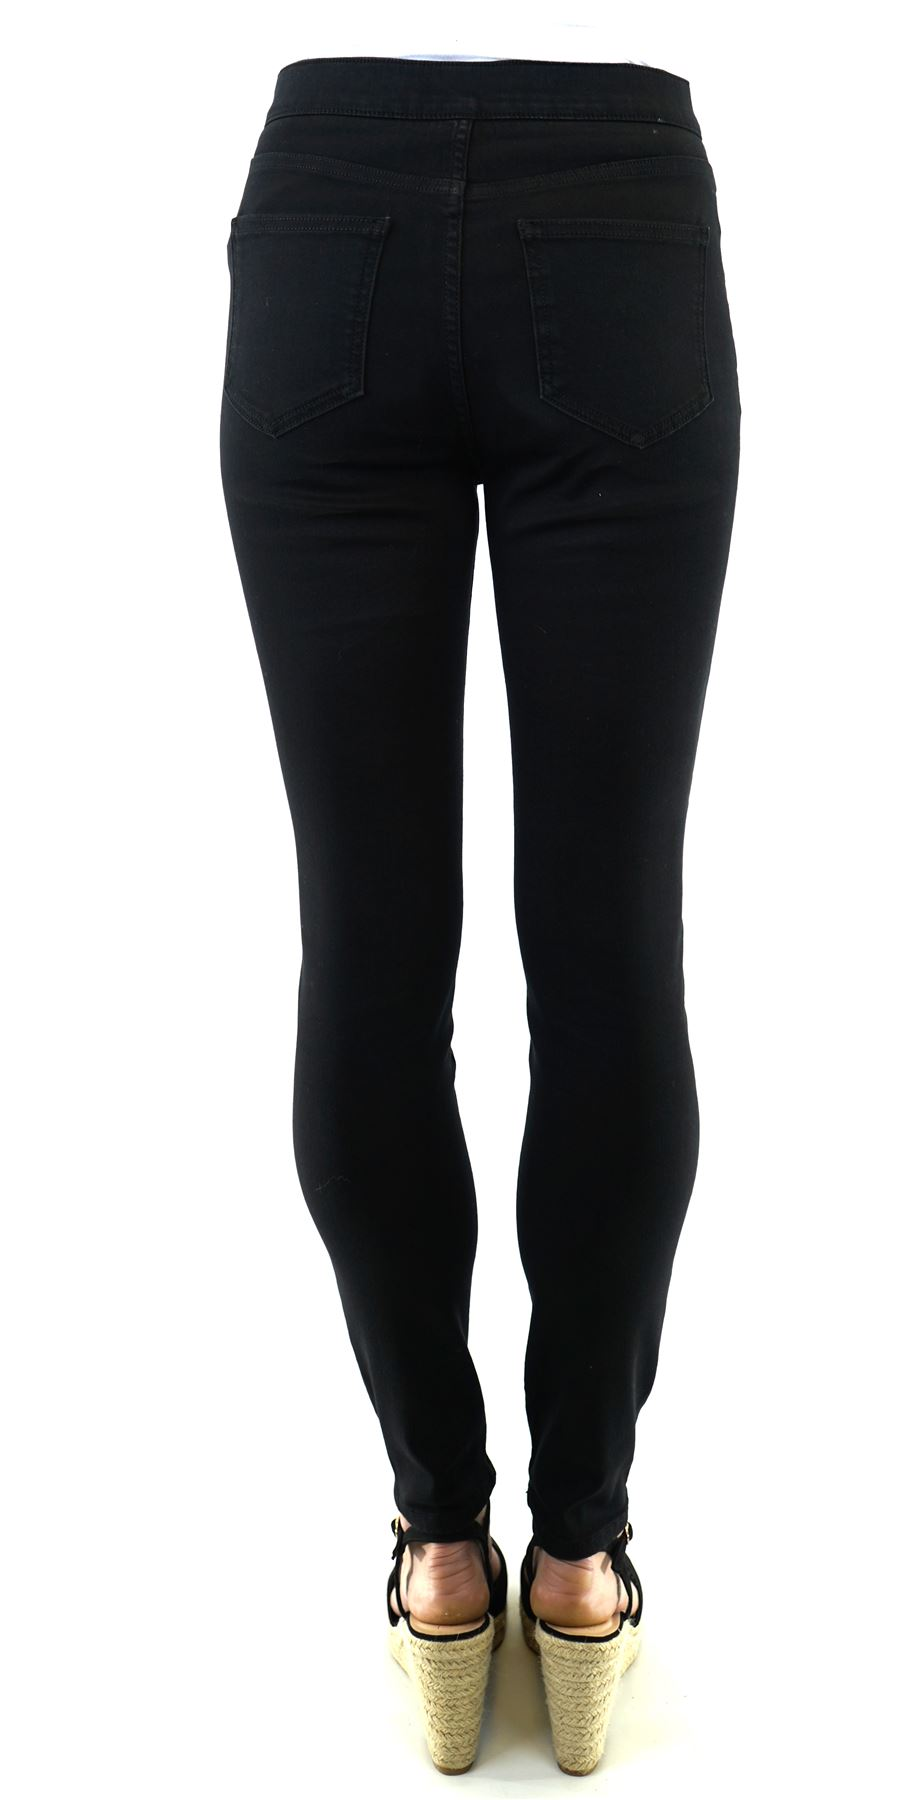 thumbnail 28 - Karen Millen Womens Casual Black Denim Button Jegging Ladies Jean Stylish Gift